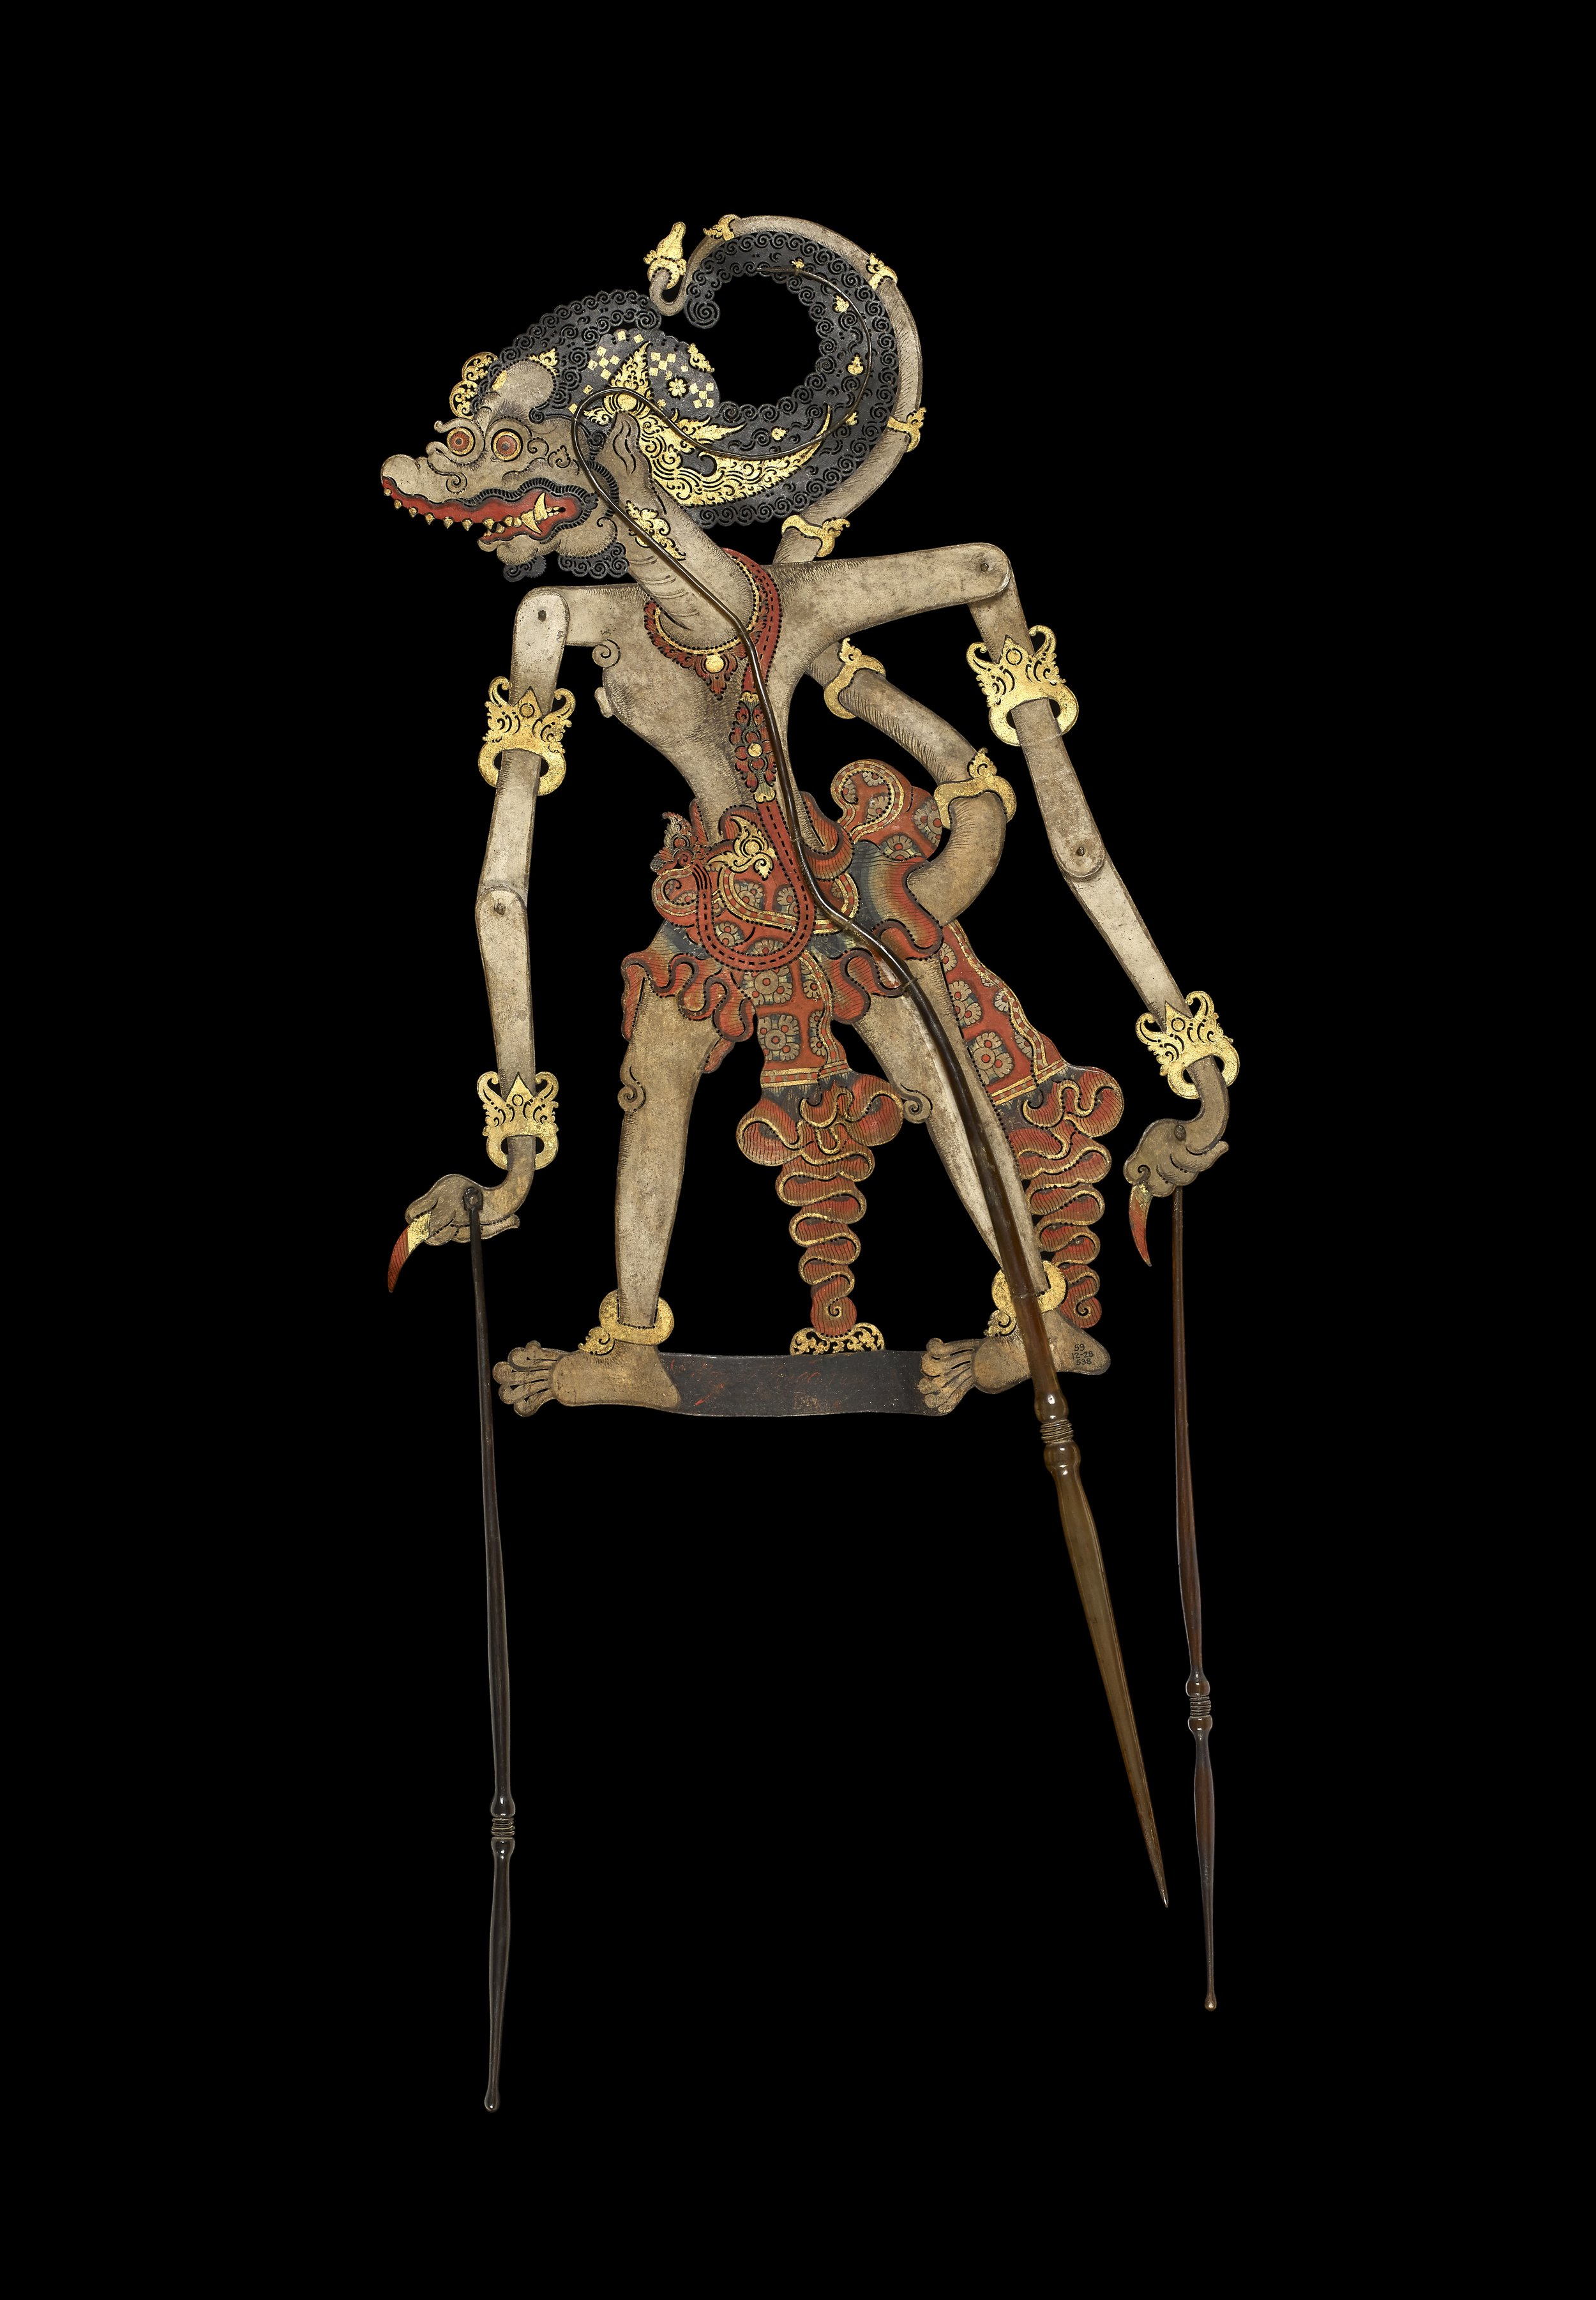 A white monkey, probably Hanuman, identified as Monyet Fugganga Central Java, Late 1700s—early 1800s Hide, horn, pigment, and gold leaf, 74.5 x 21 cm Donated by Rev. William Charles Raffles Flint, executor of Lady Raffles' estate Image Courtesy of British Museum